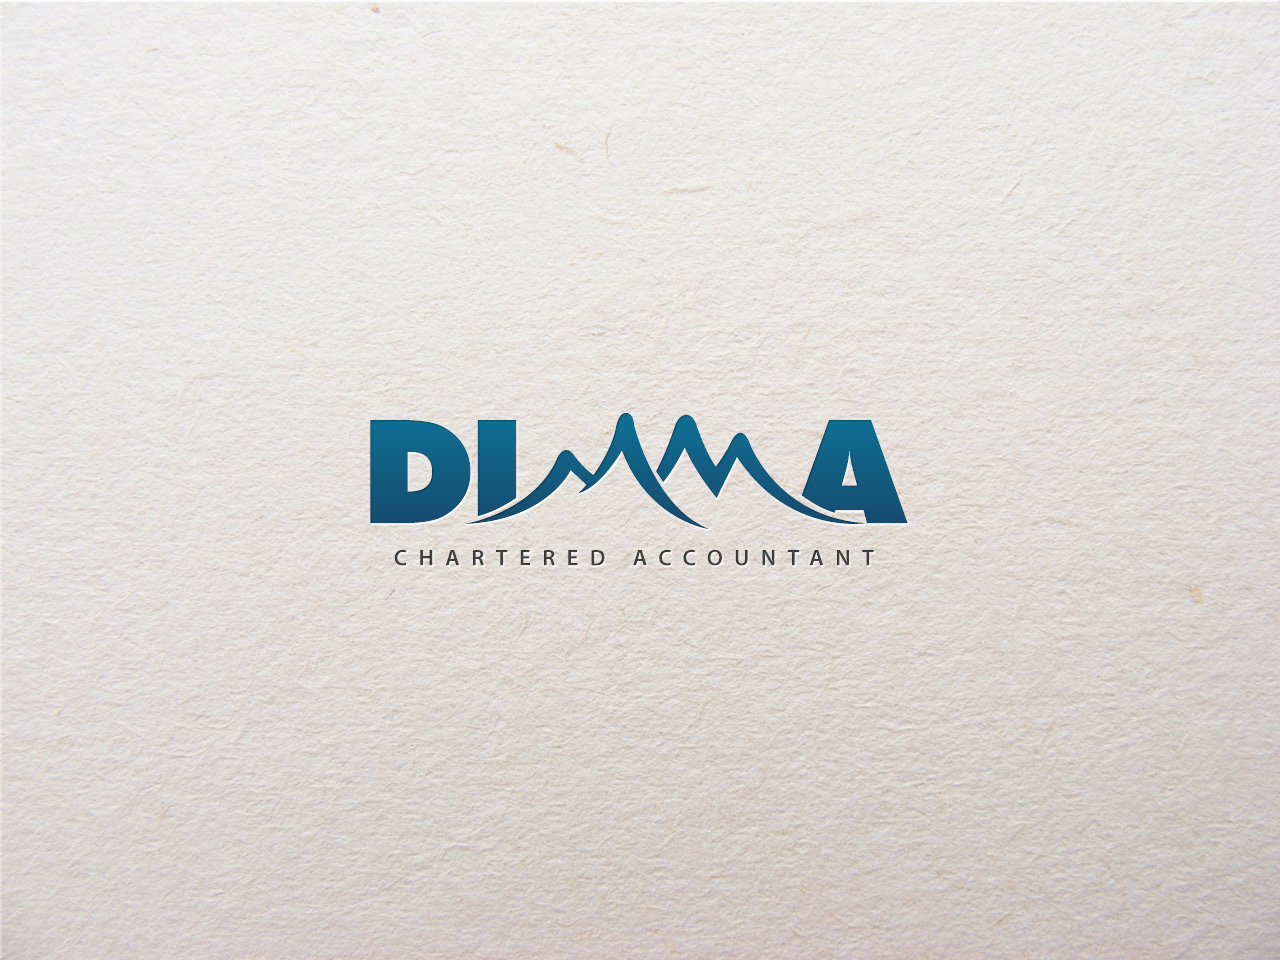 Logo Design by jpbituin - Entry No. 43 in the Logo Design Contest Creative Logo Design for Dimma Chartered Accountant.